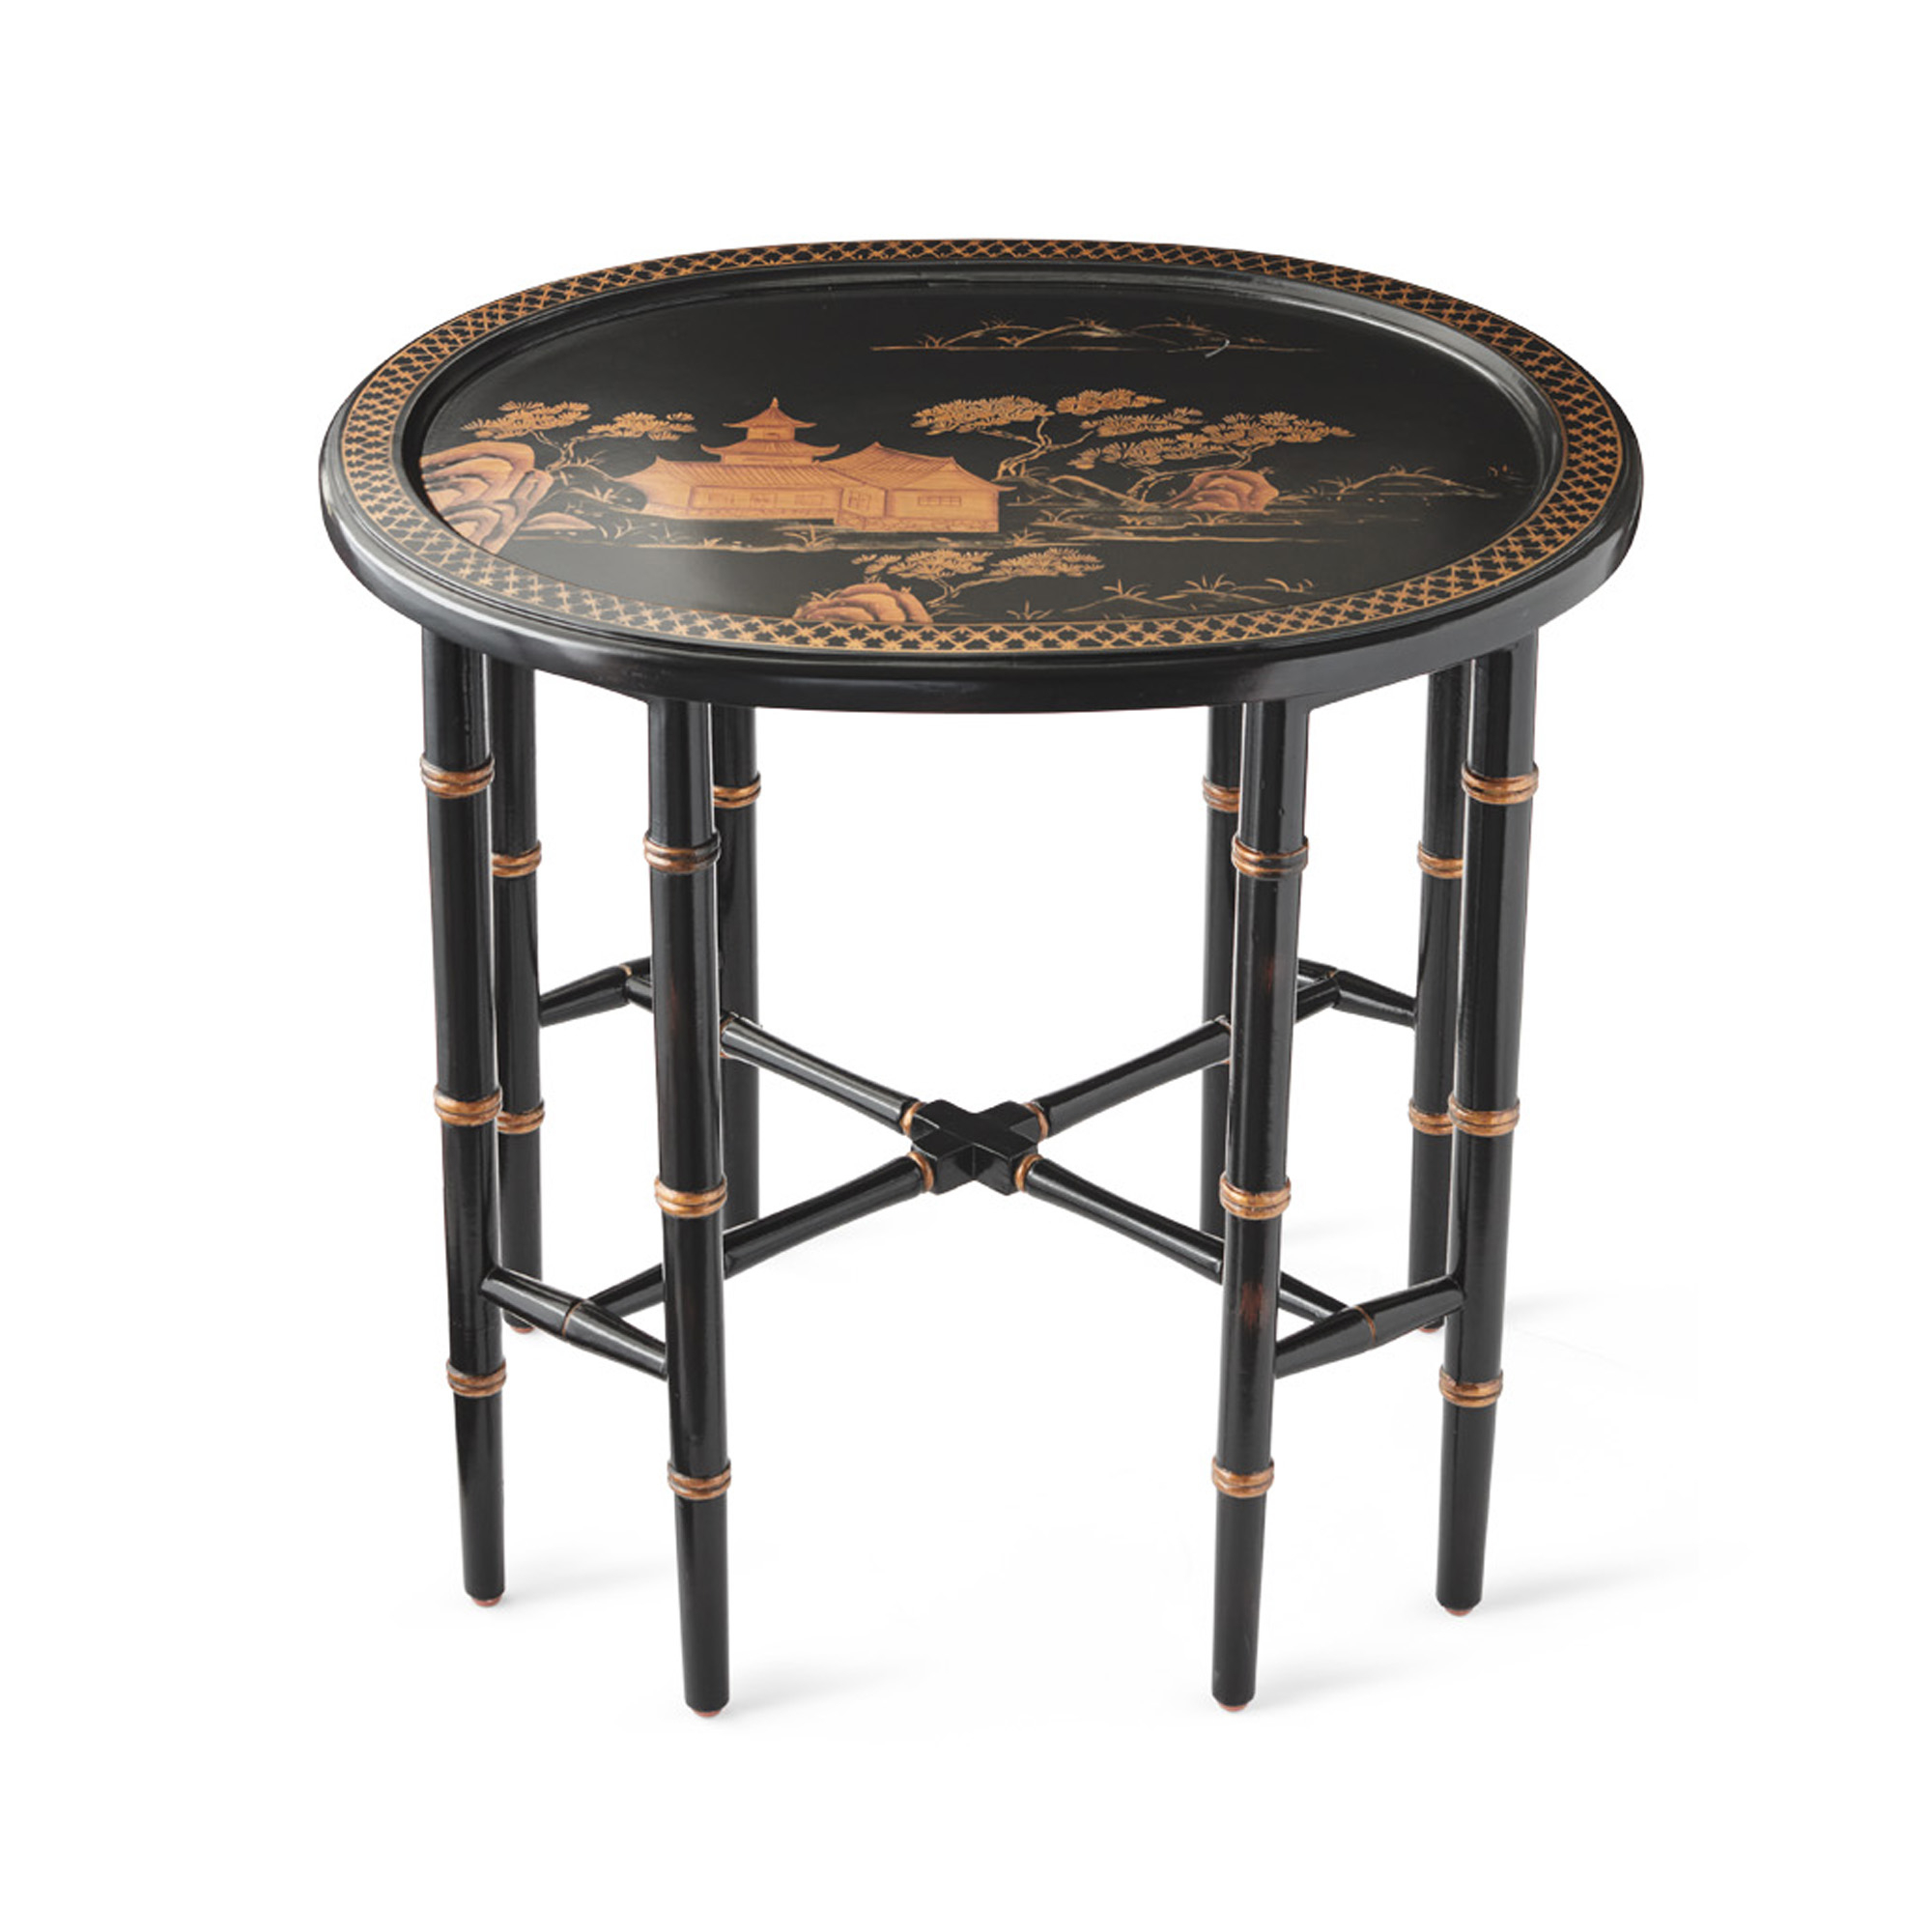 AsianStyle Furniture Chinoiserie Gumps San Francisco